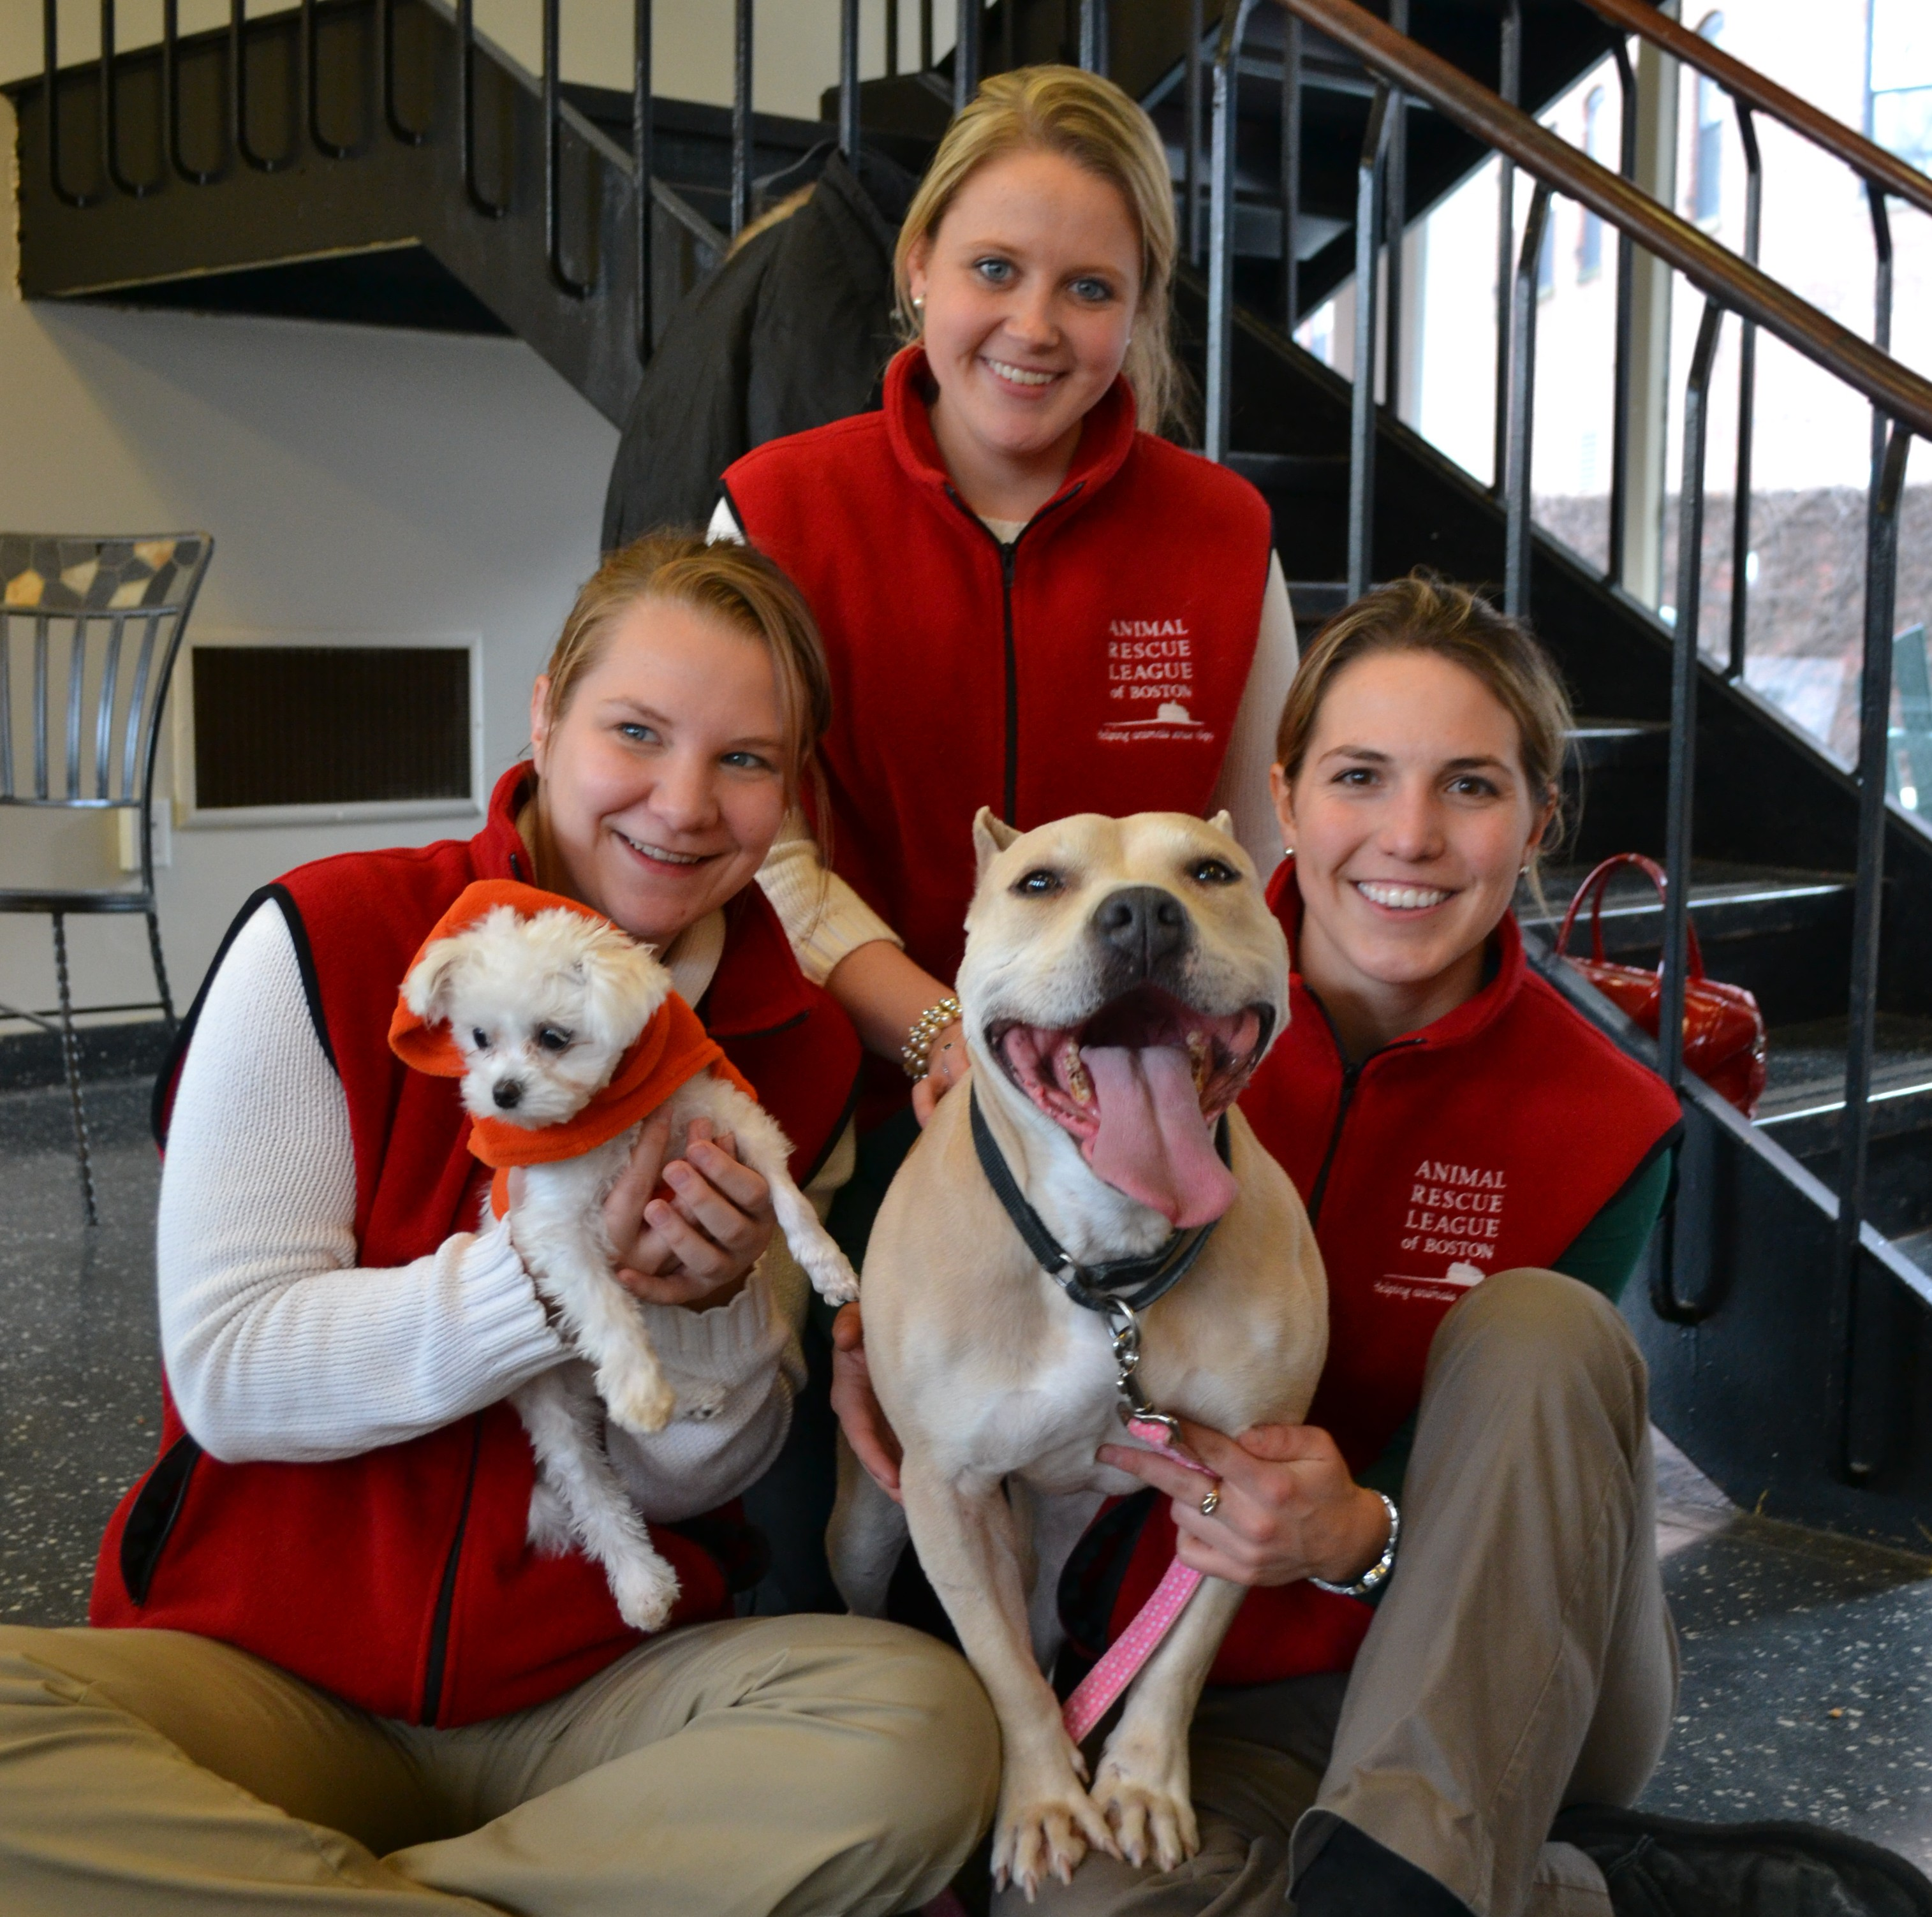 Animal Rescue League of Boston, Gibson Sotheby's International Realty, Animal Rescue League, Boston Charities